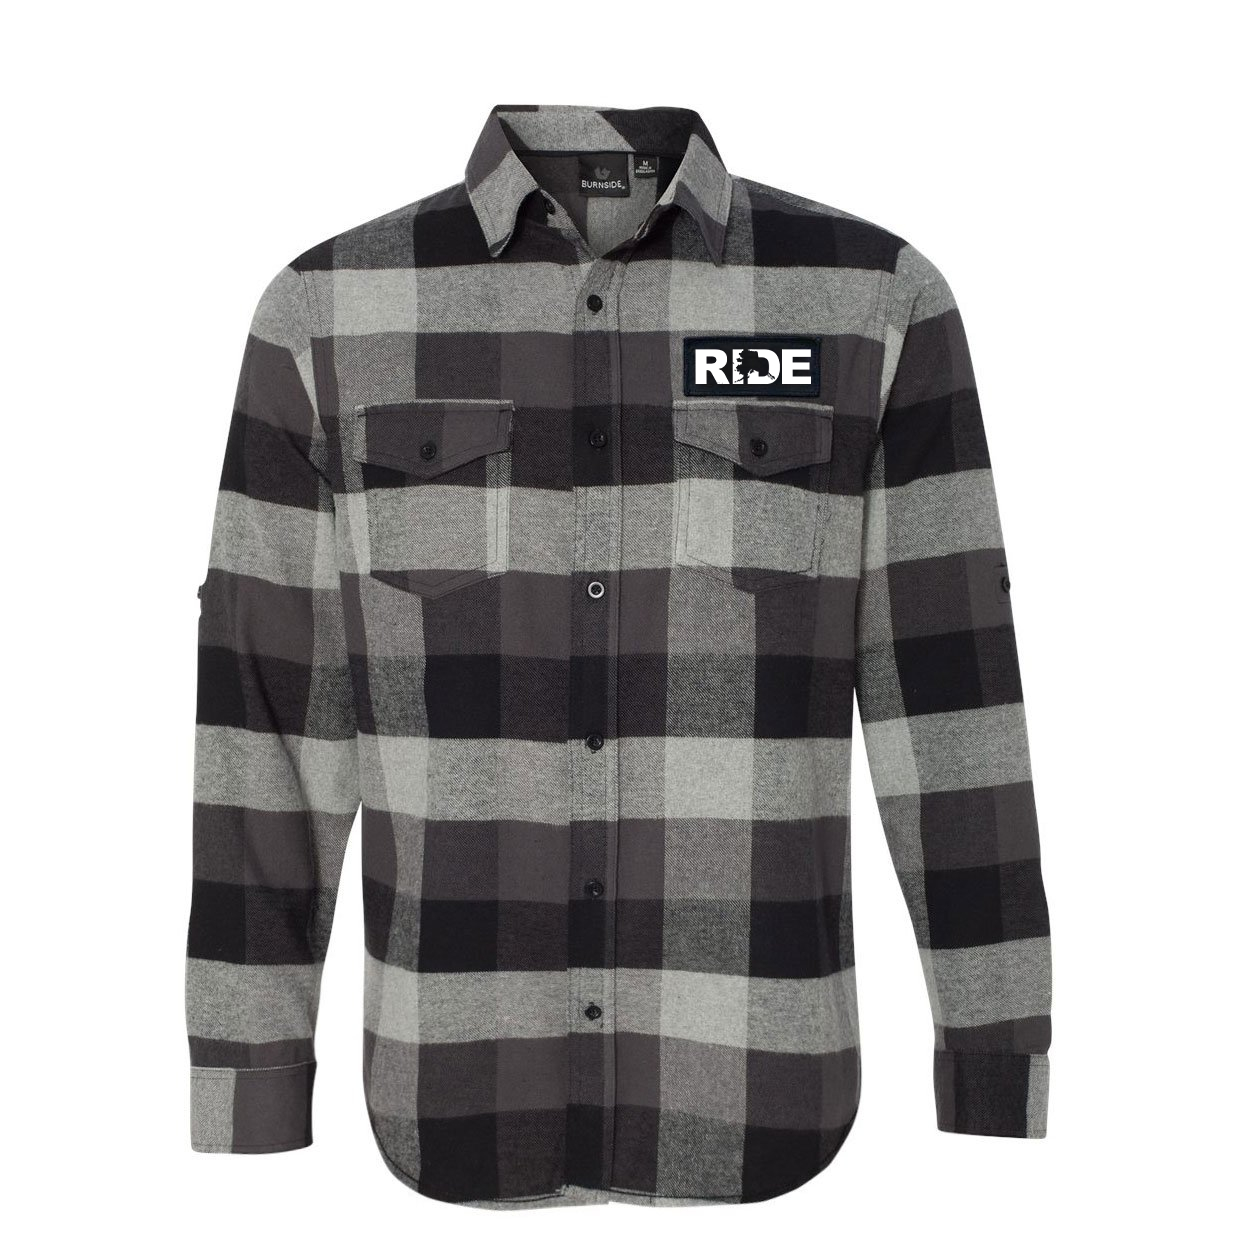 Ride Alaska Classic Unisex Long Sleeve Woven Patch Flannel Shirt Black/Gray (White Logo)